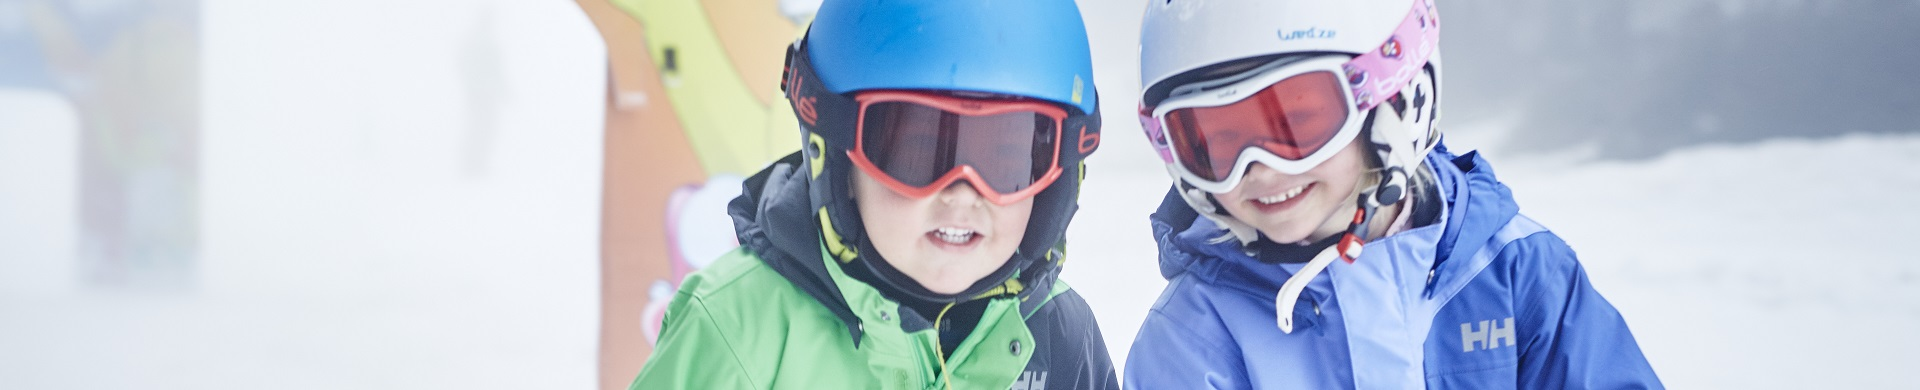 Kids ski clothing + helmets